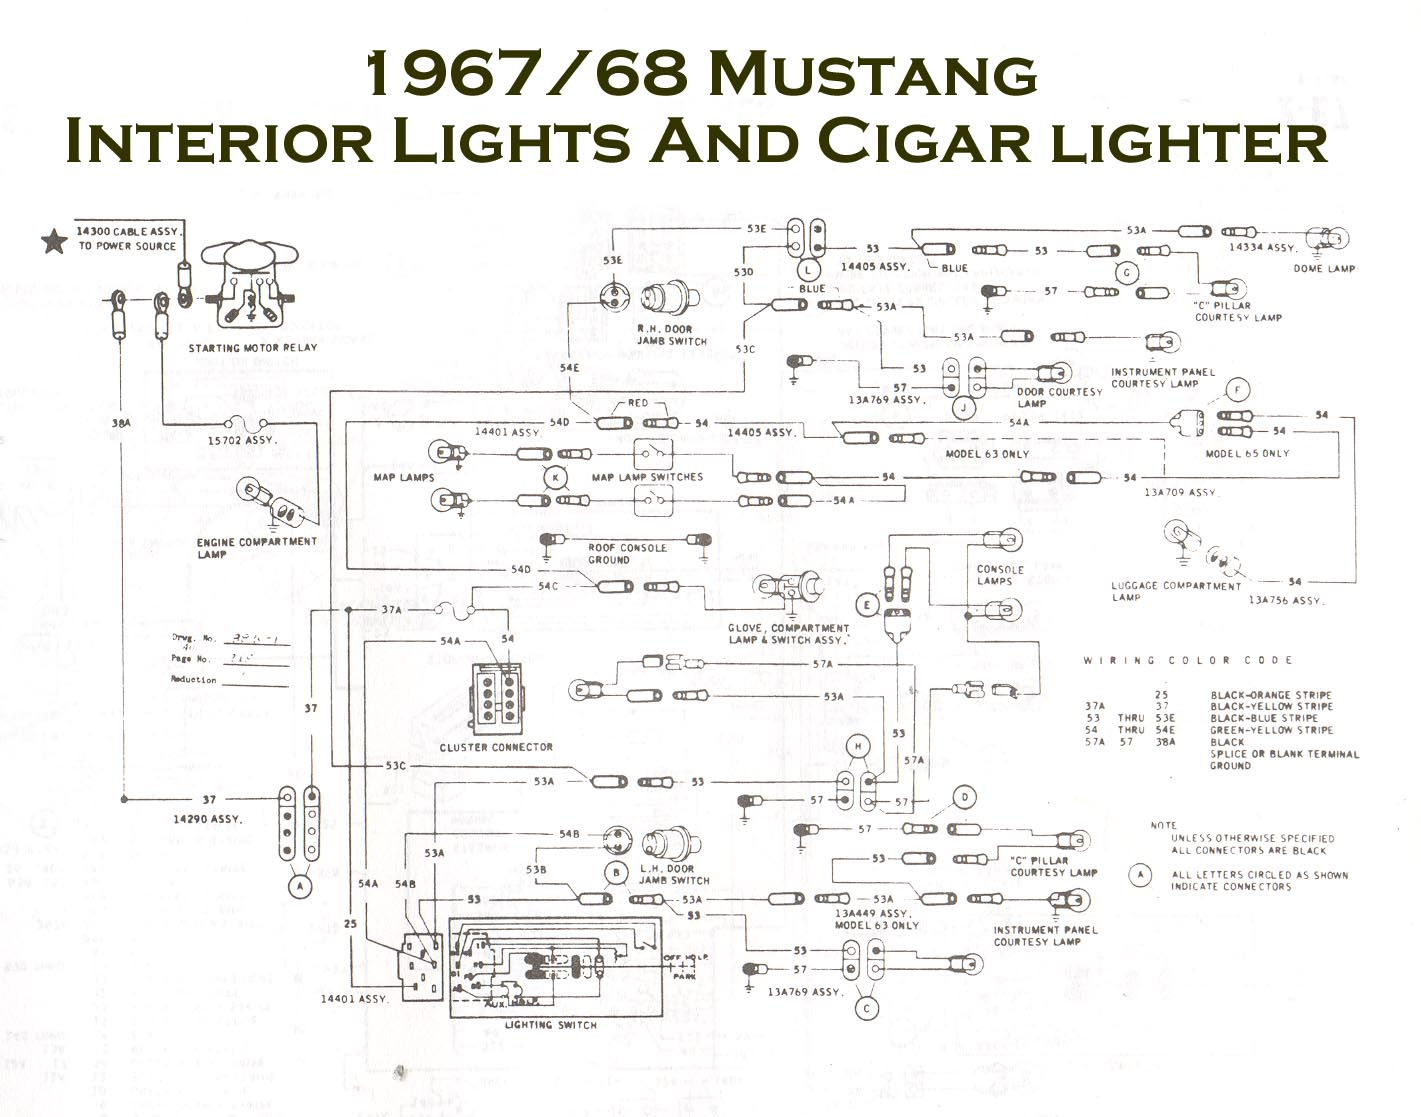 1967 mustang headlight switch wiring example electrical wiring rh  huntervalleyhotels co 1965 Mustang Alternator Wiring Diagram 1967 Mustang  Fog Lights ...